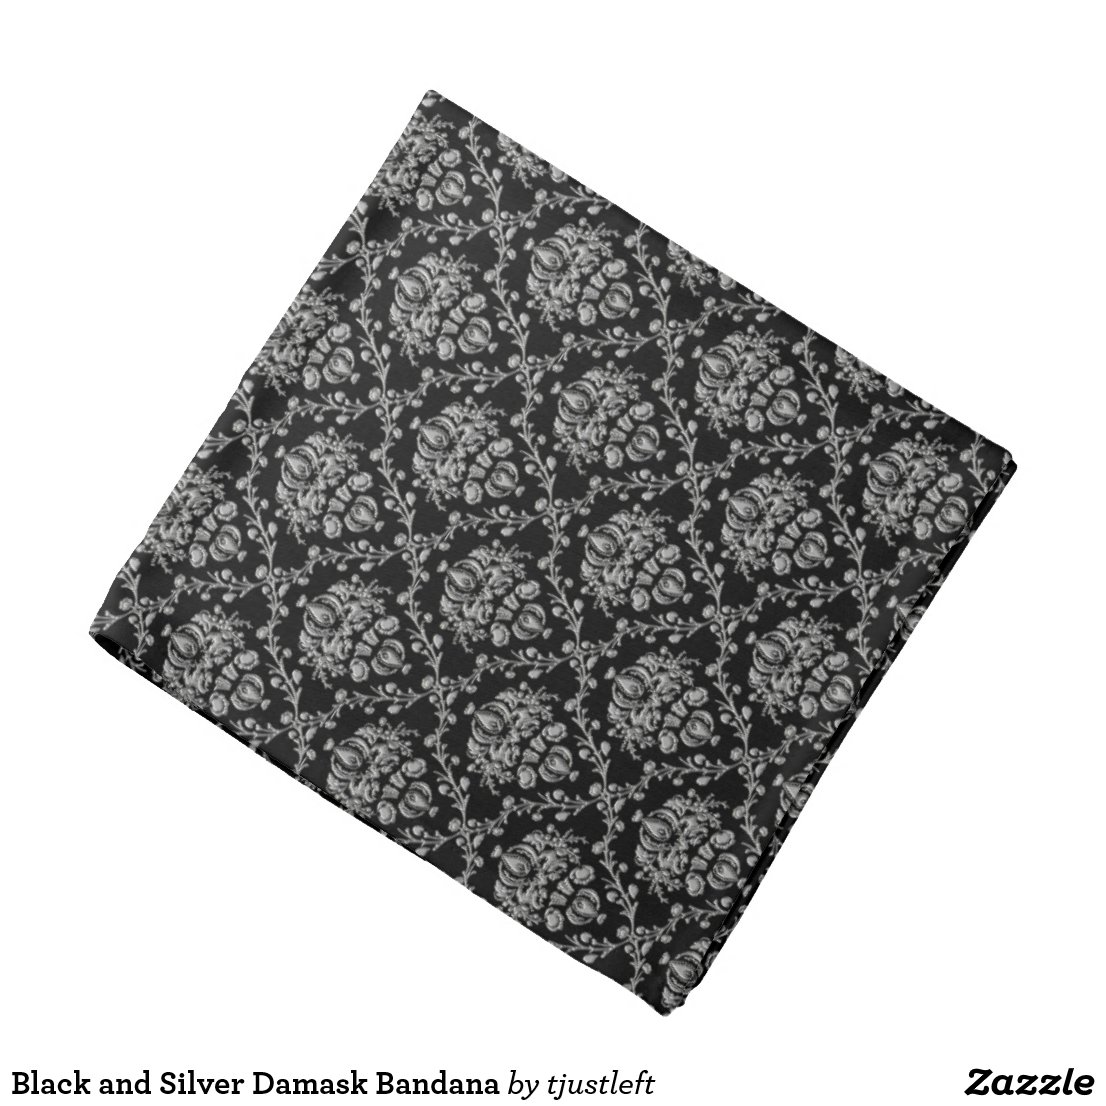 Black and Silver Damask Bandana